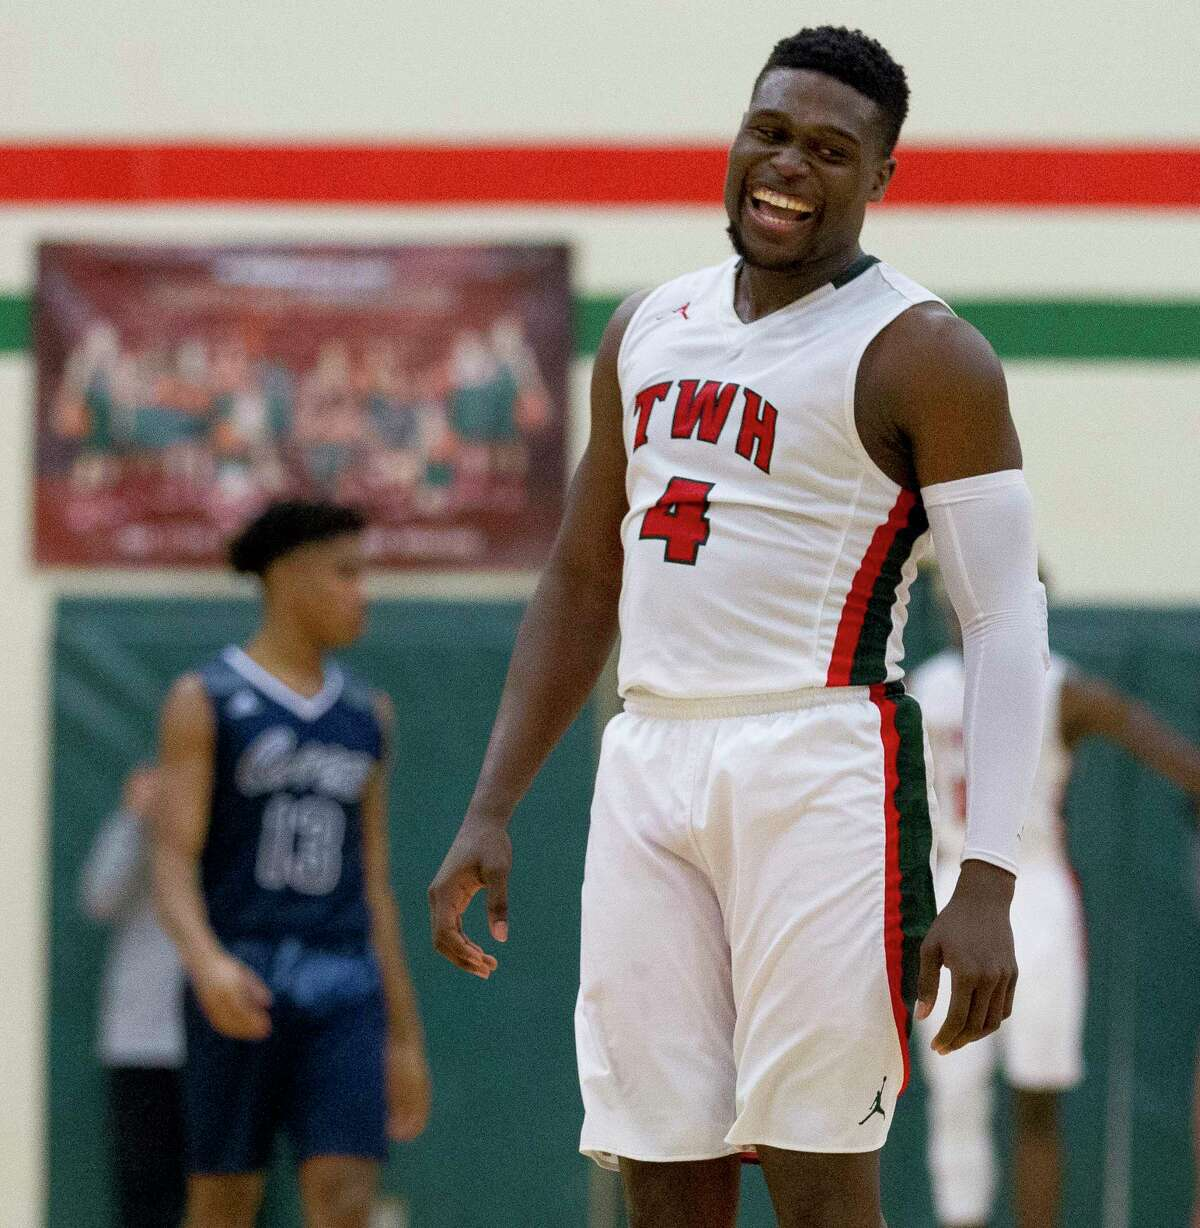 The Woodlands guard Romello Wilbert (4) reacts after drawing a foul late in the fourth quarter of a District 12-6A high school basketball game at The Woodlands High School, Tuesday, Jan. 23, 2018, in The Woodlands.